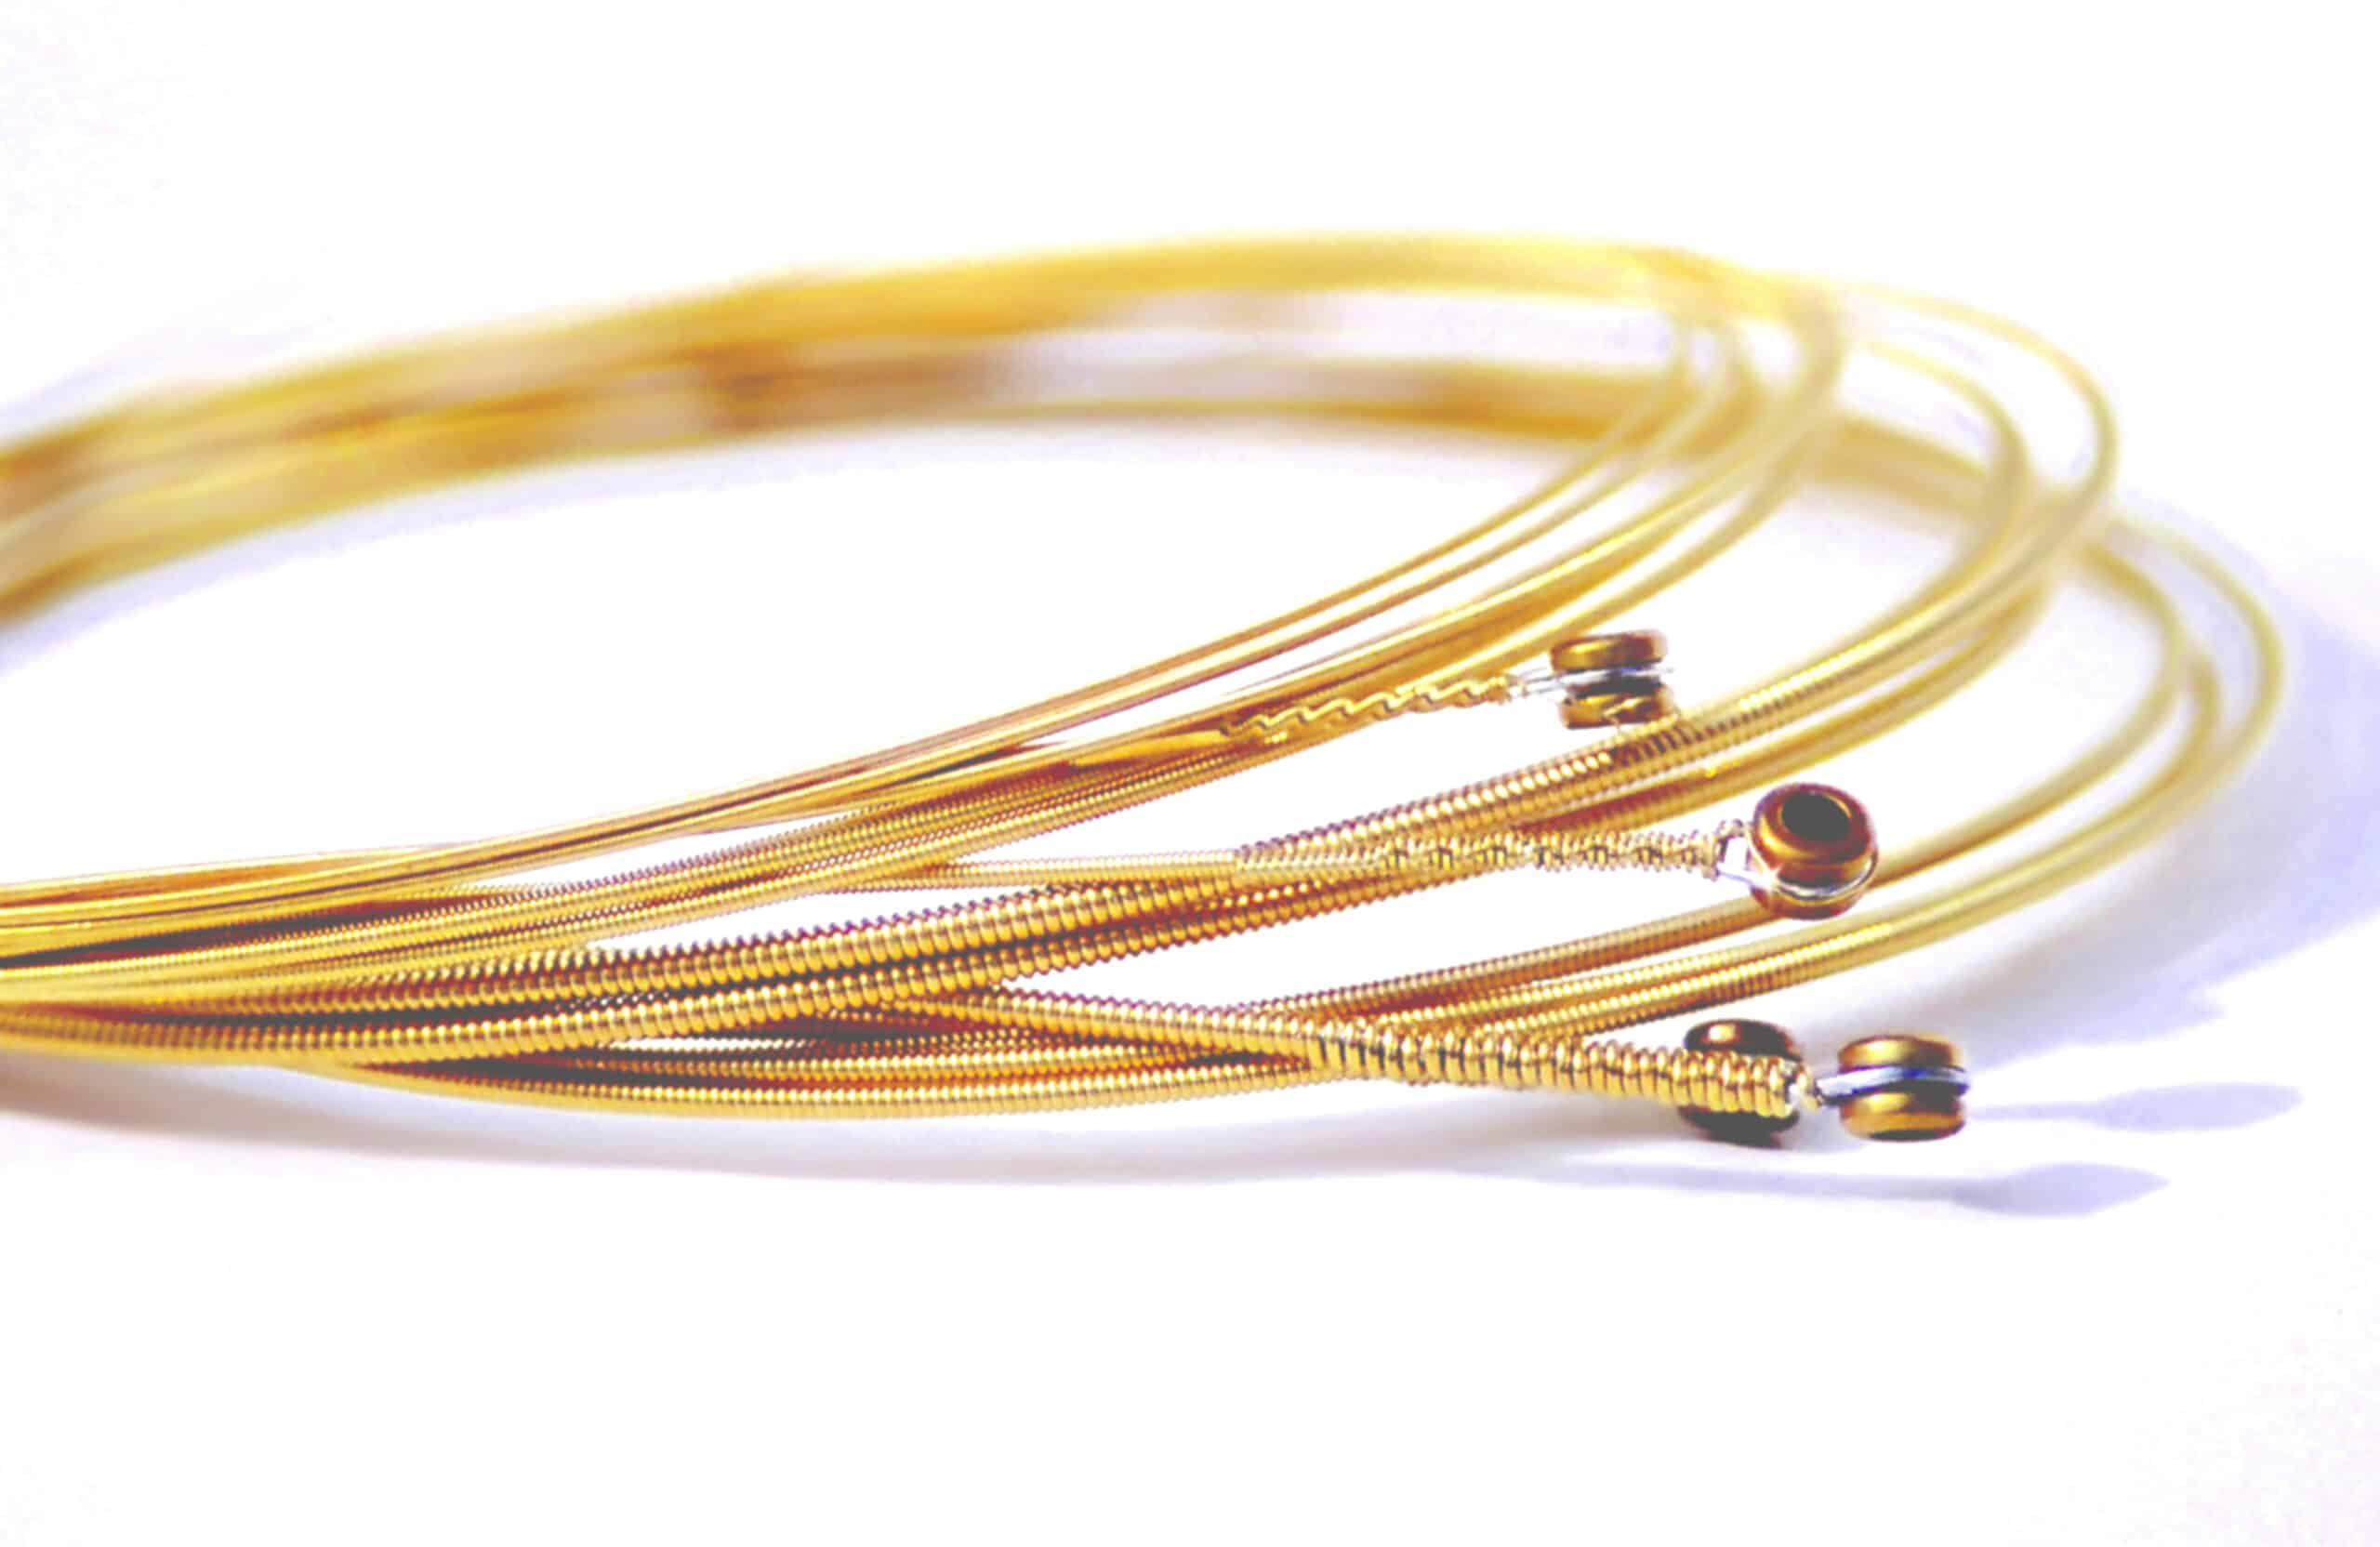 Custom Guitar Strings: The Next Big Thing In Strings